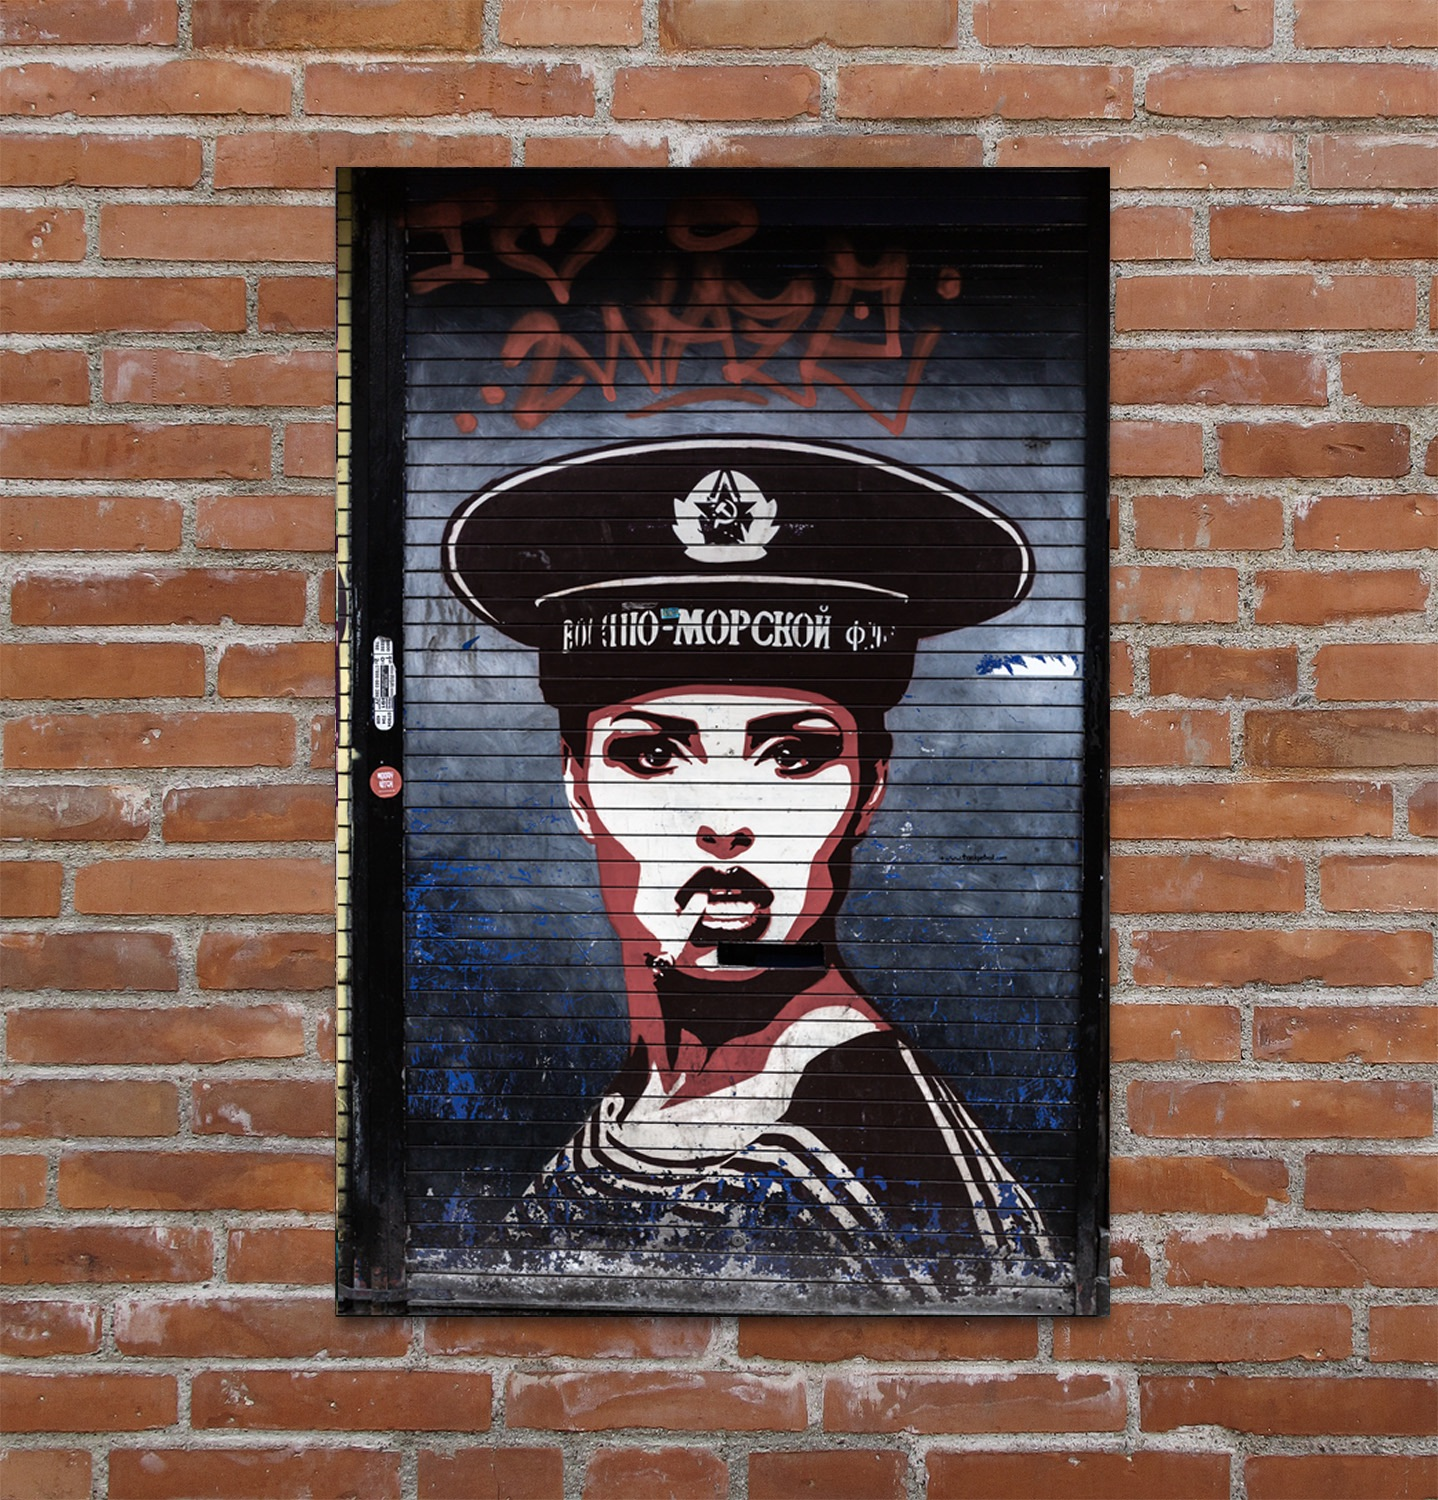 Graffiti image of woman in Russian militiary uniform smoking cigarette.